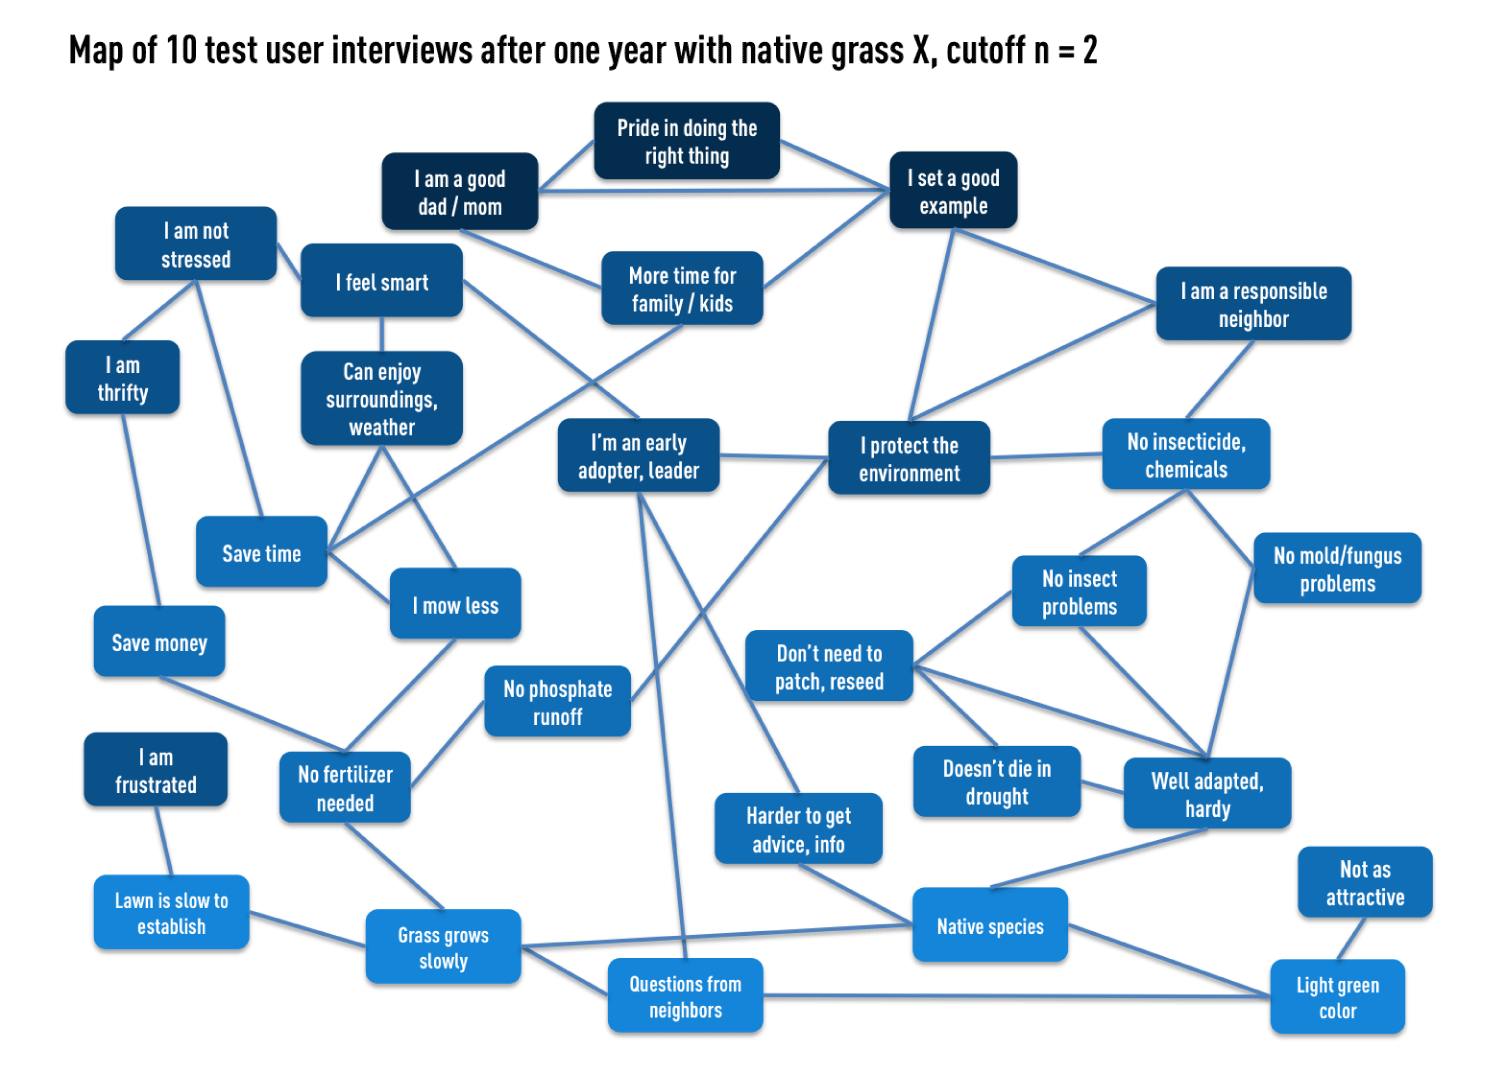 image of cognitive map of 10 test user interviews after 1 year with native grass: see text description below